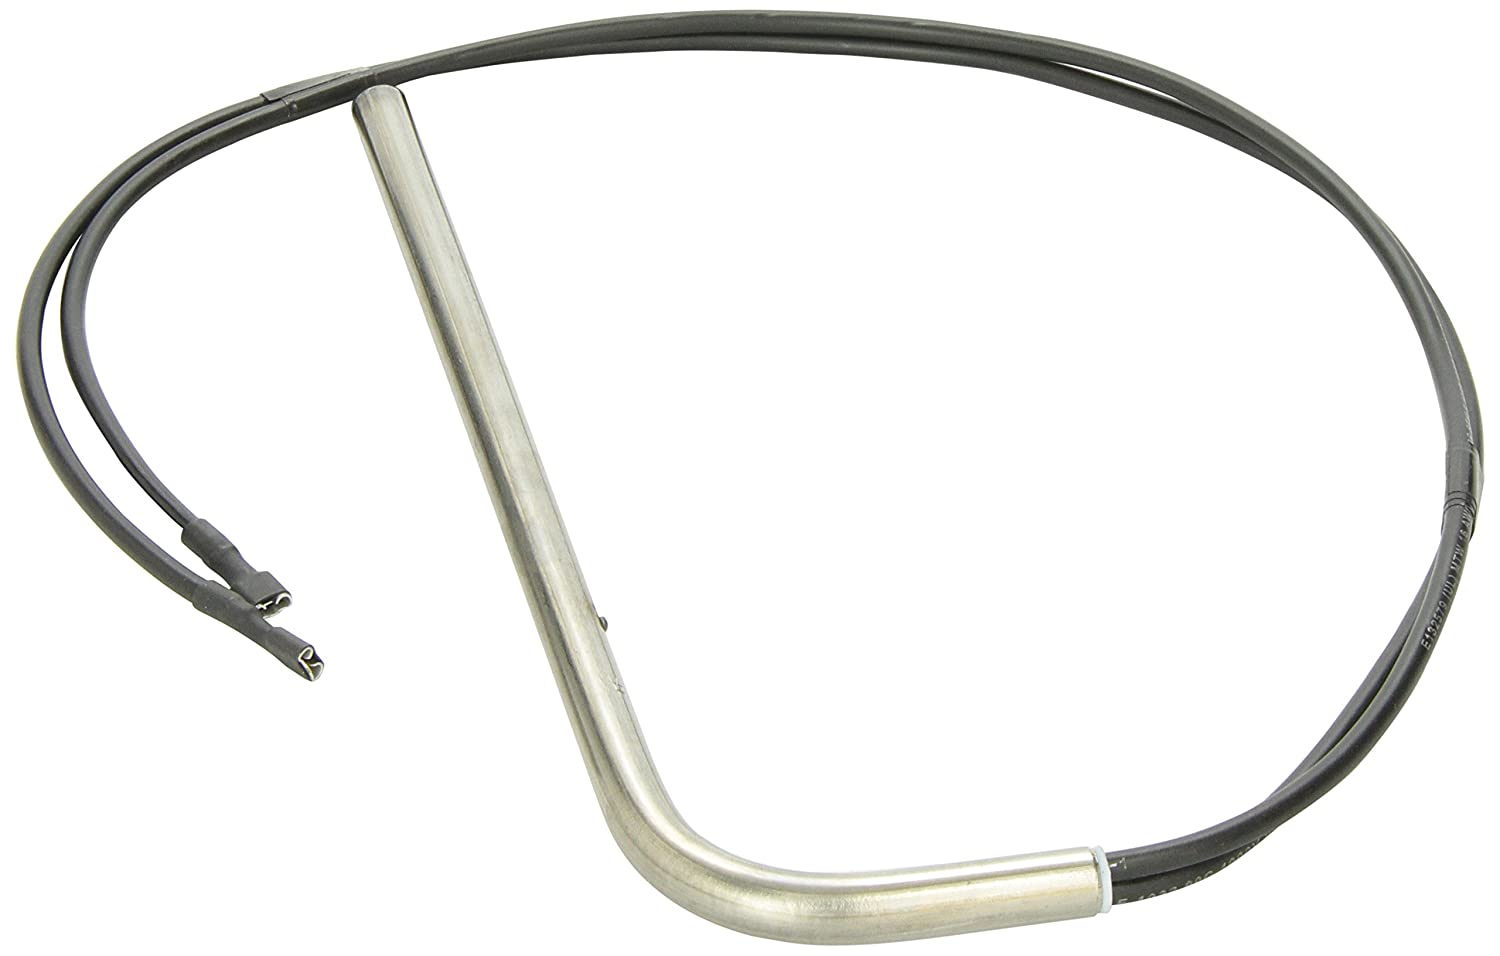 Norcold (621702) Refrigerator Heating Element